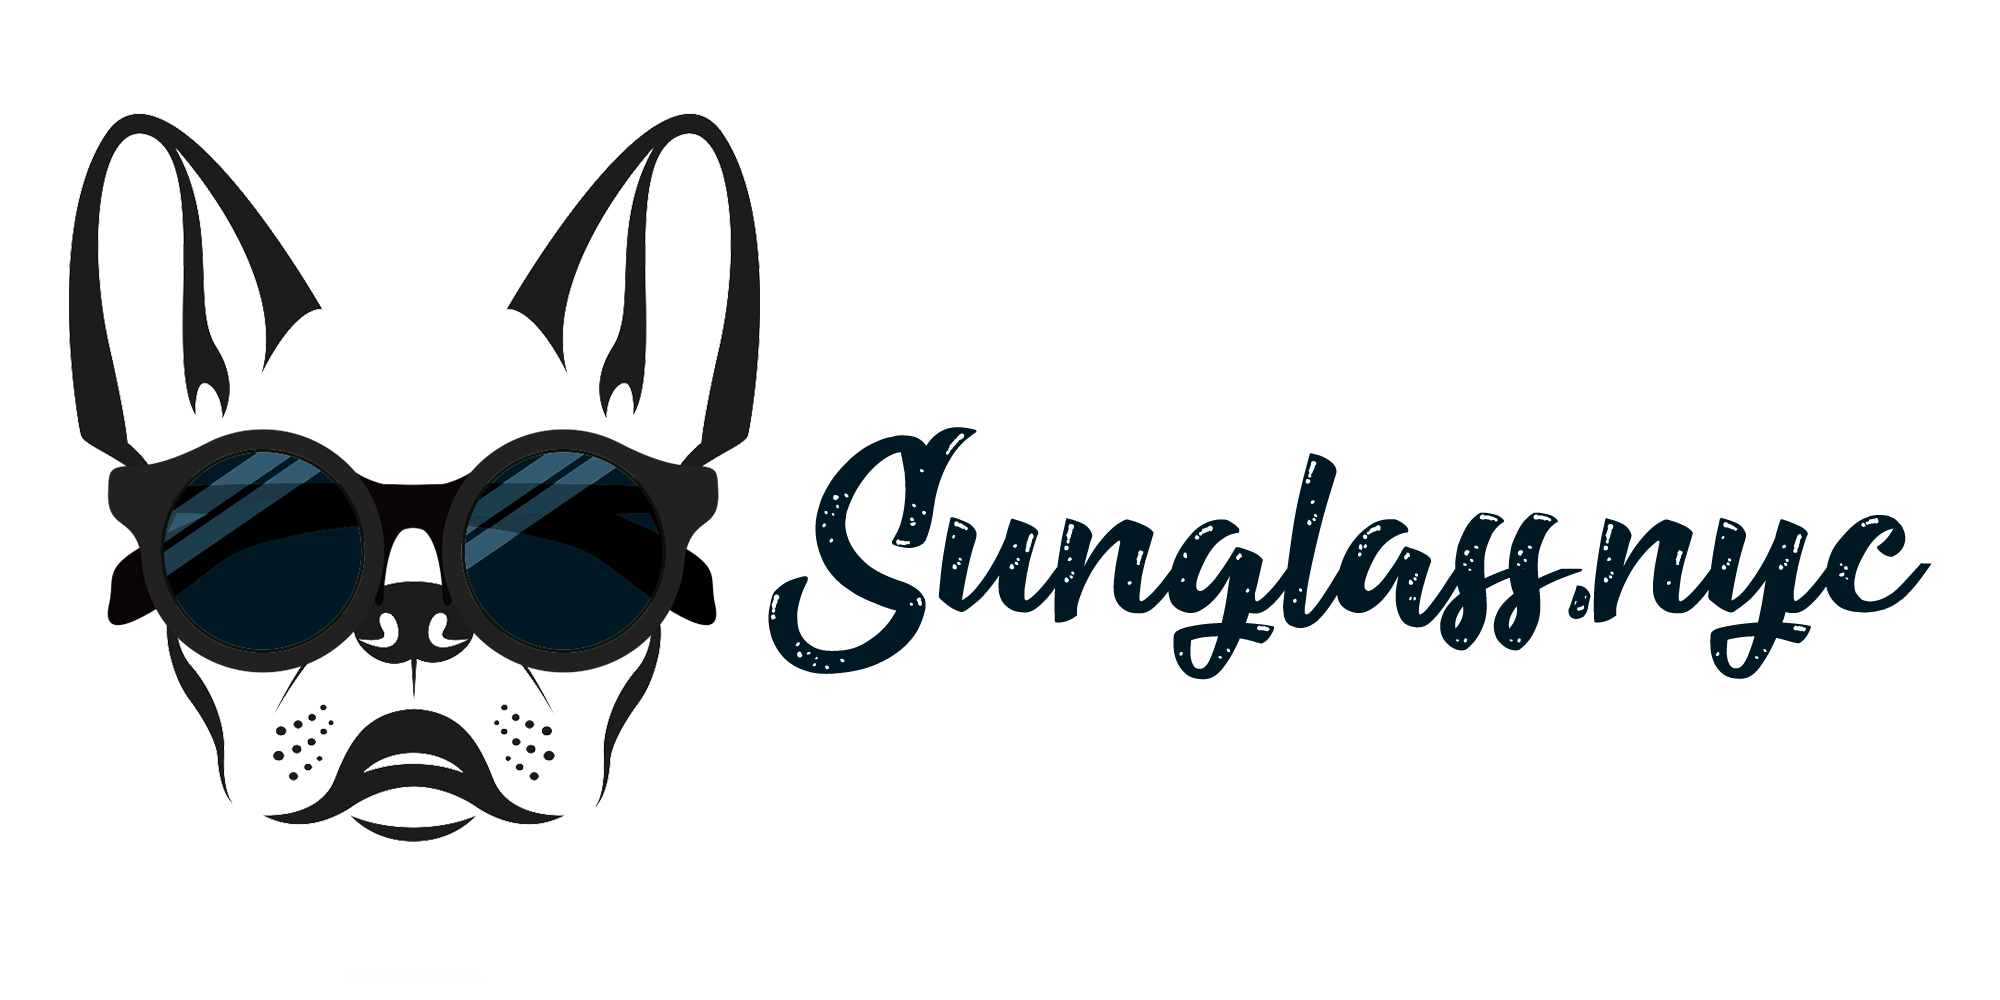 Cat eye sunglass nyc. Sunglasses clipart vintage glass